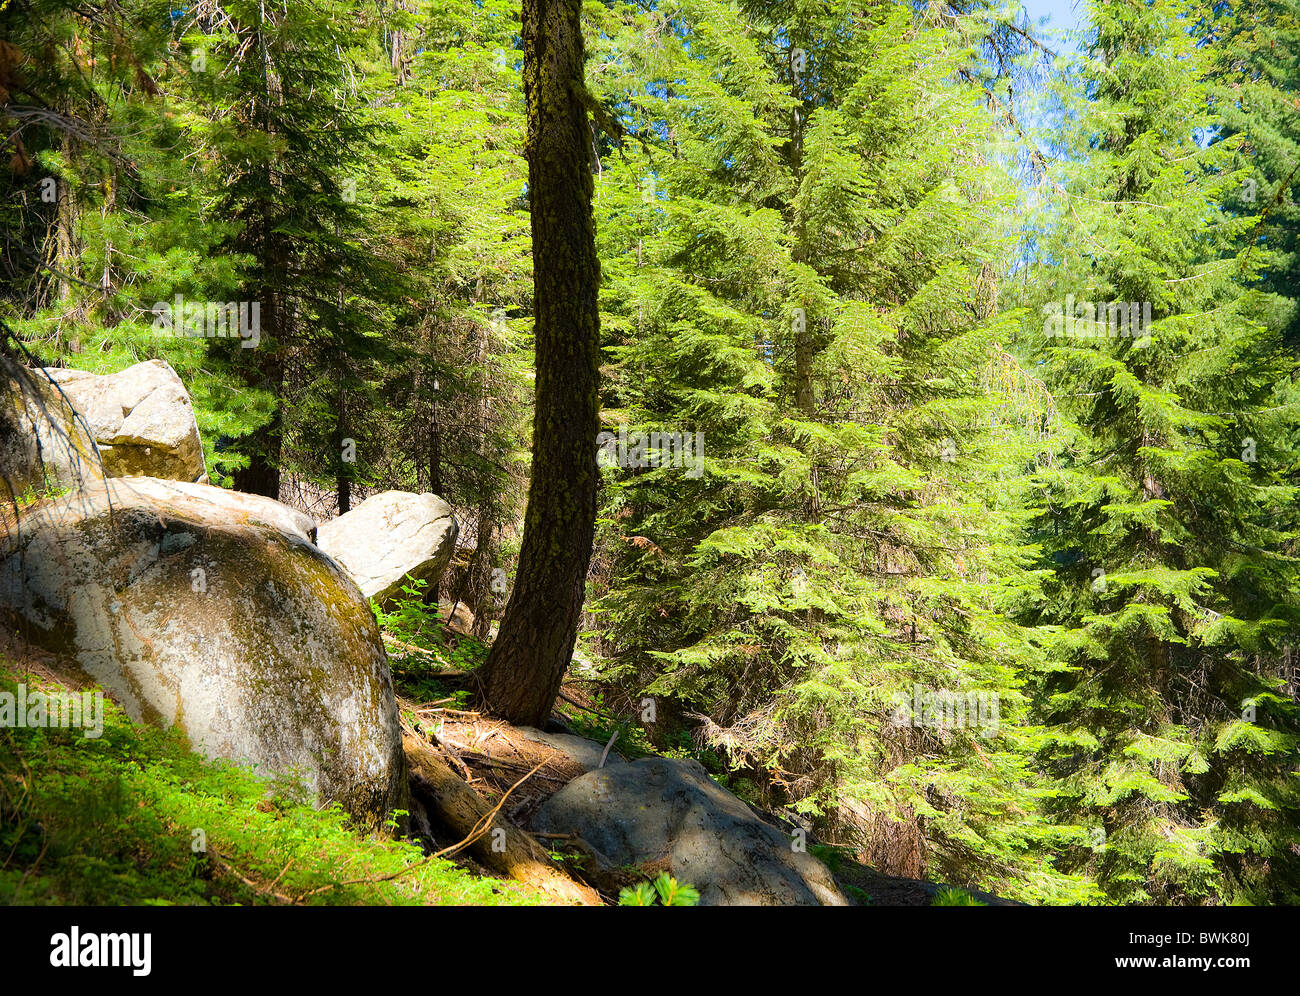 Sequoia National Park trees woods fir spruces stones rocks tranquility - Stock Image